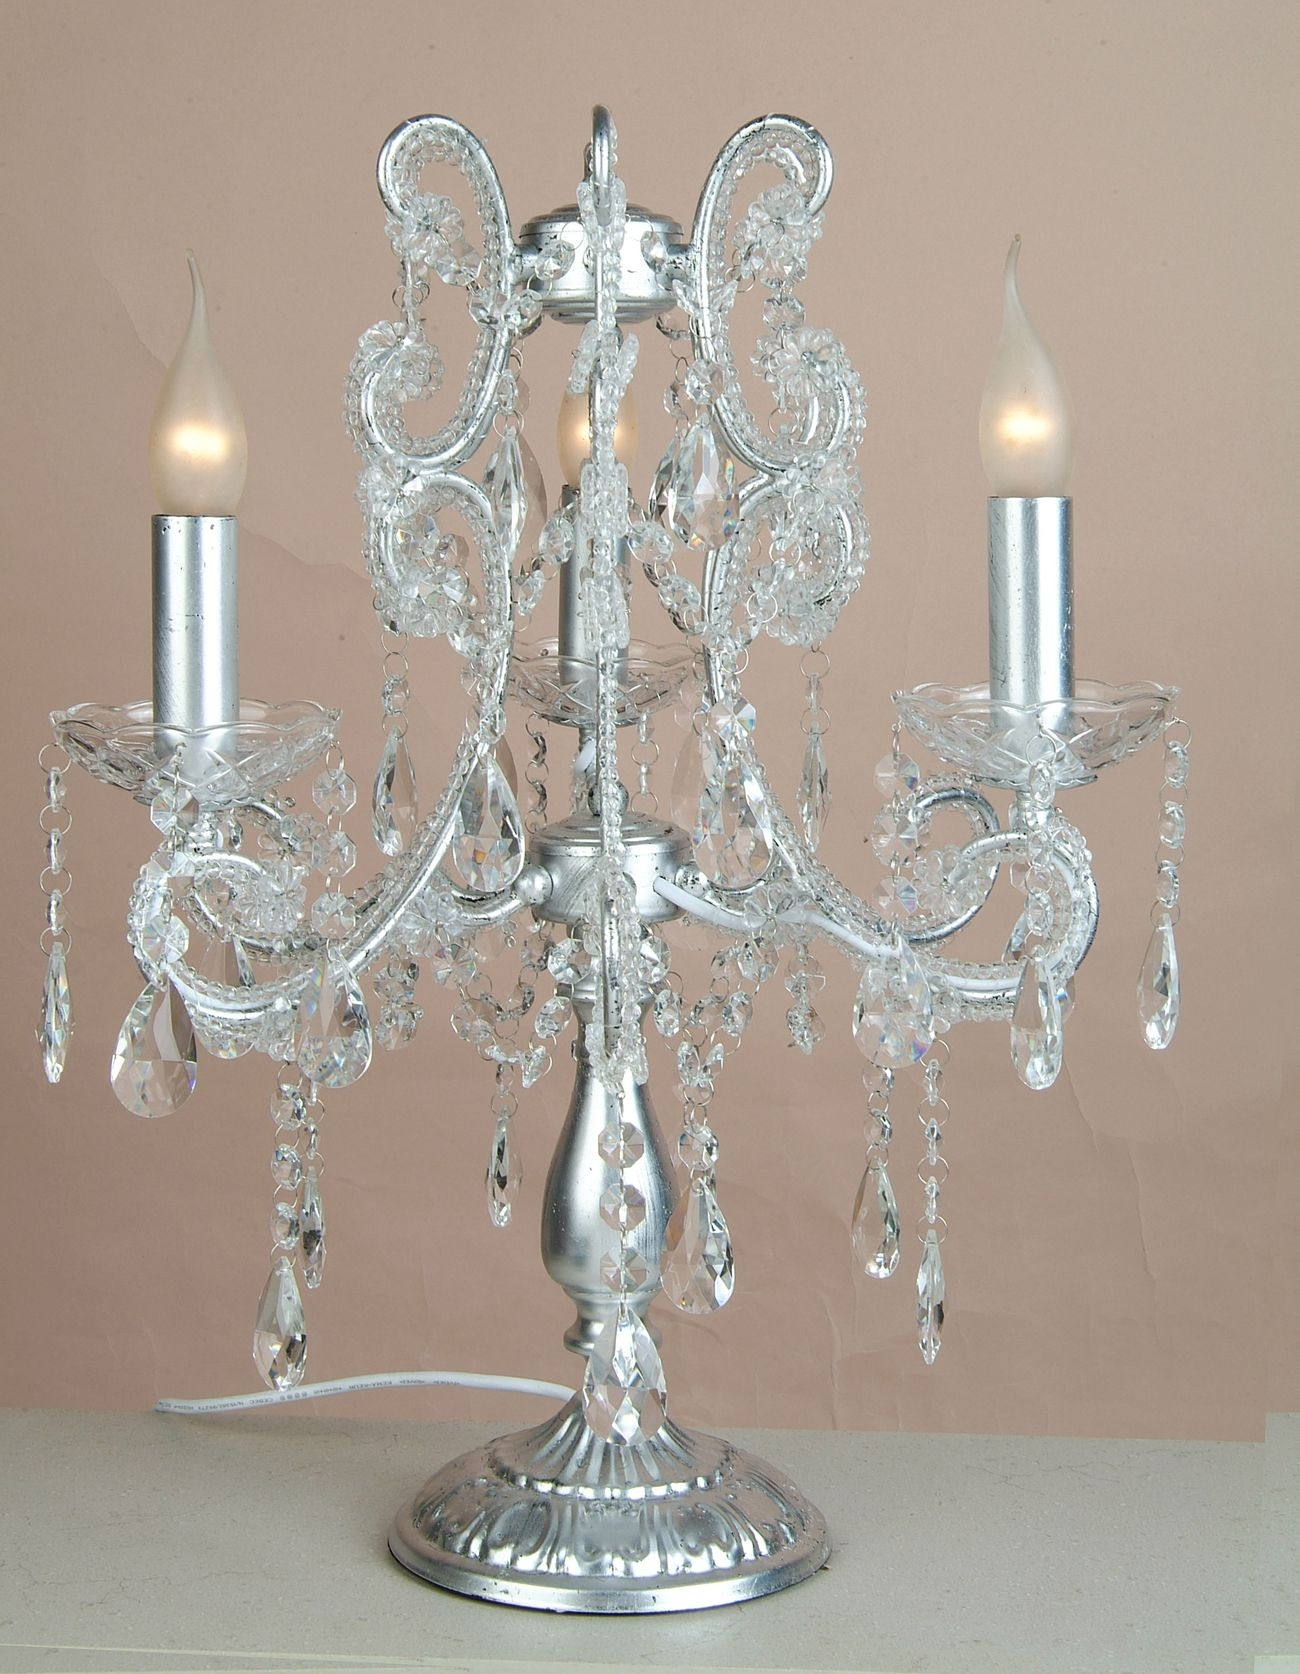 Chandelier Table Lamps Uk Roselawnlutheran With Regard To Table Chandeliers (View 2 of 15)